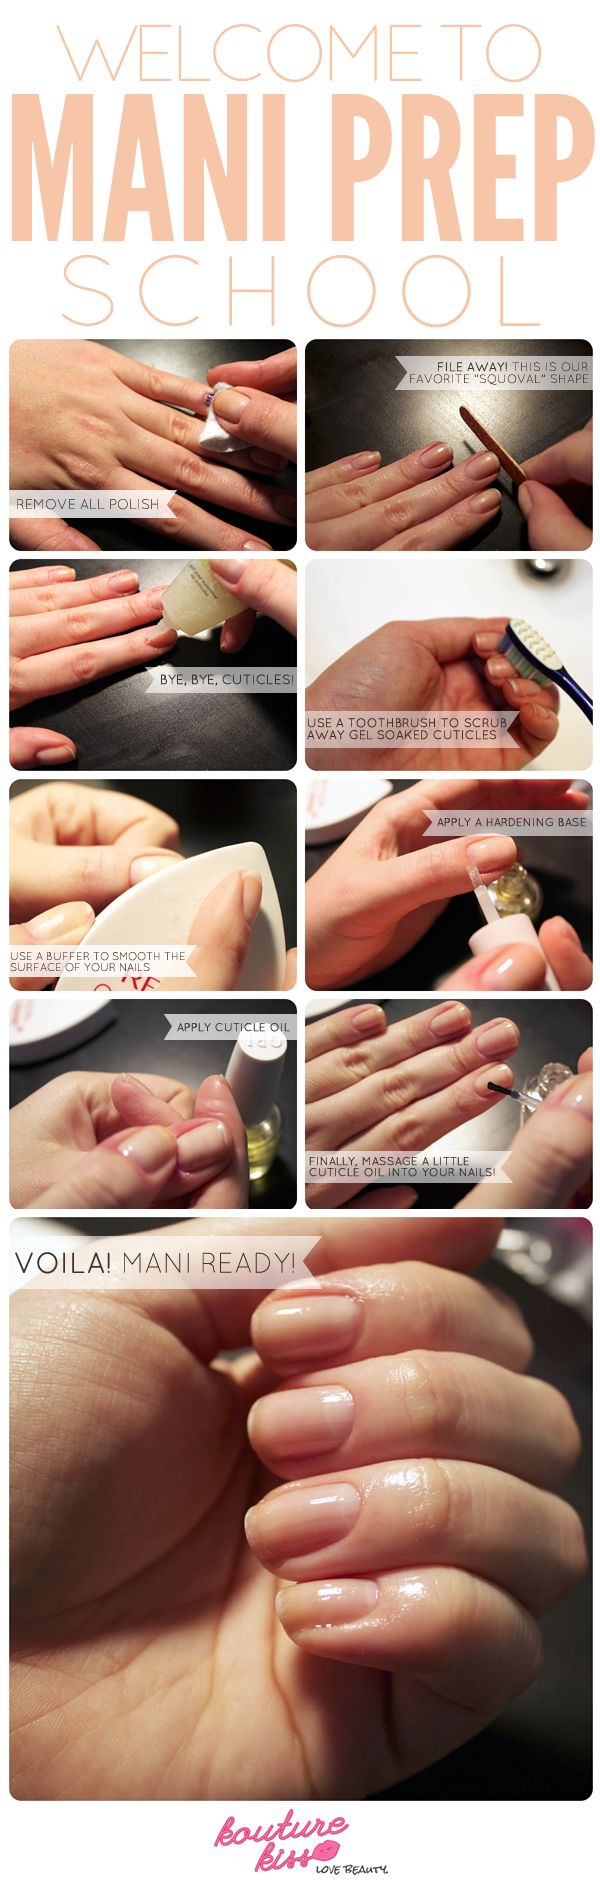 Mani-Ready! How to Exfoliate, Buff and File Pre Manicure, Salon Style!